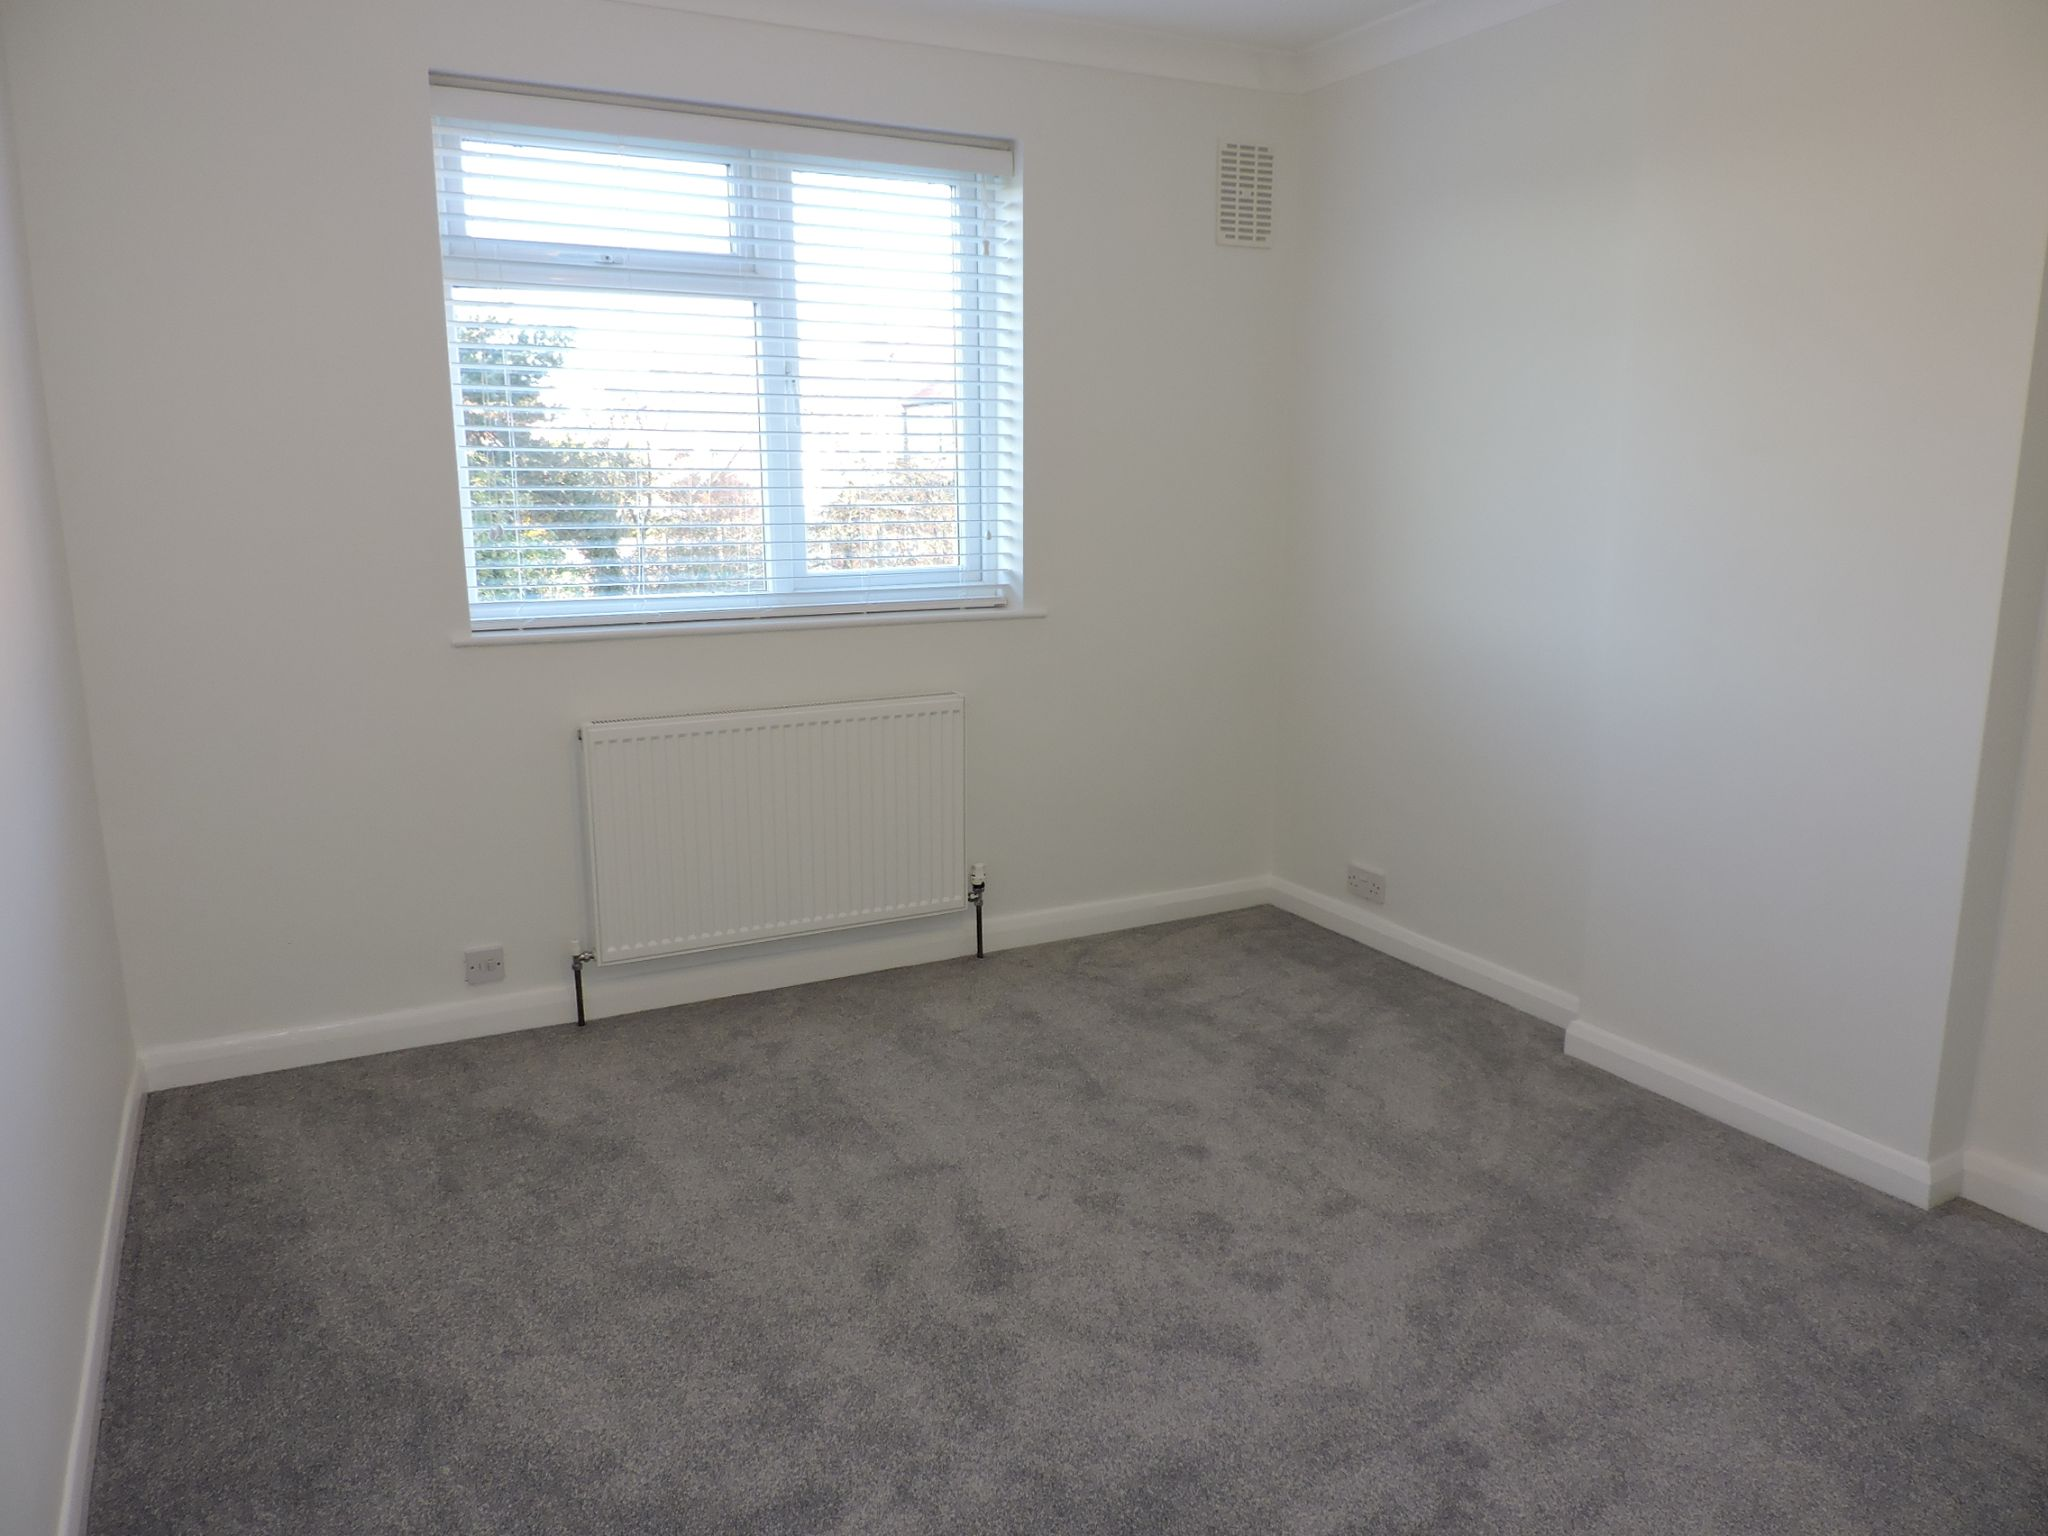 3 bedroom end terraced house Let Agreed in New Malden - Photograph 12